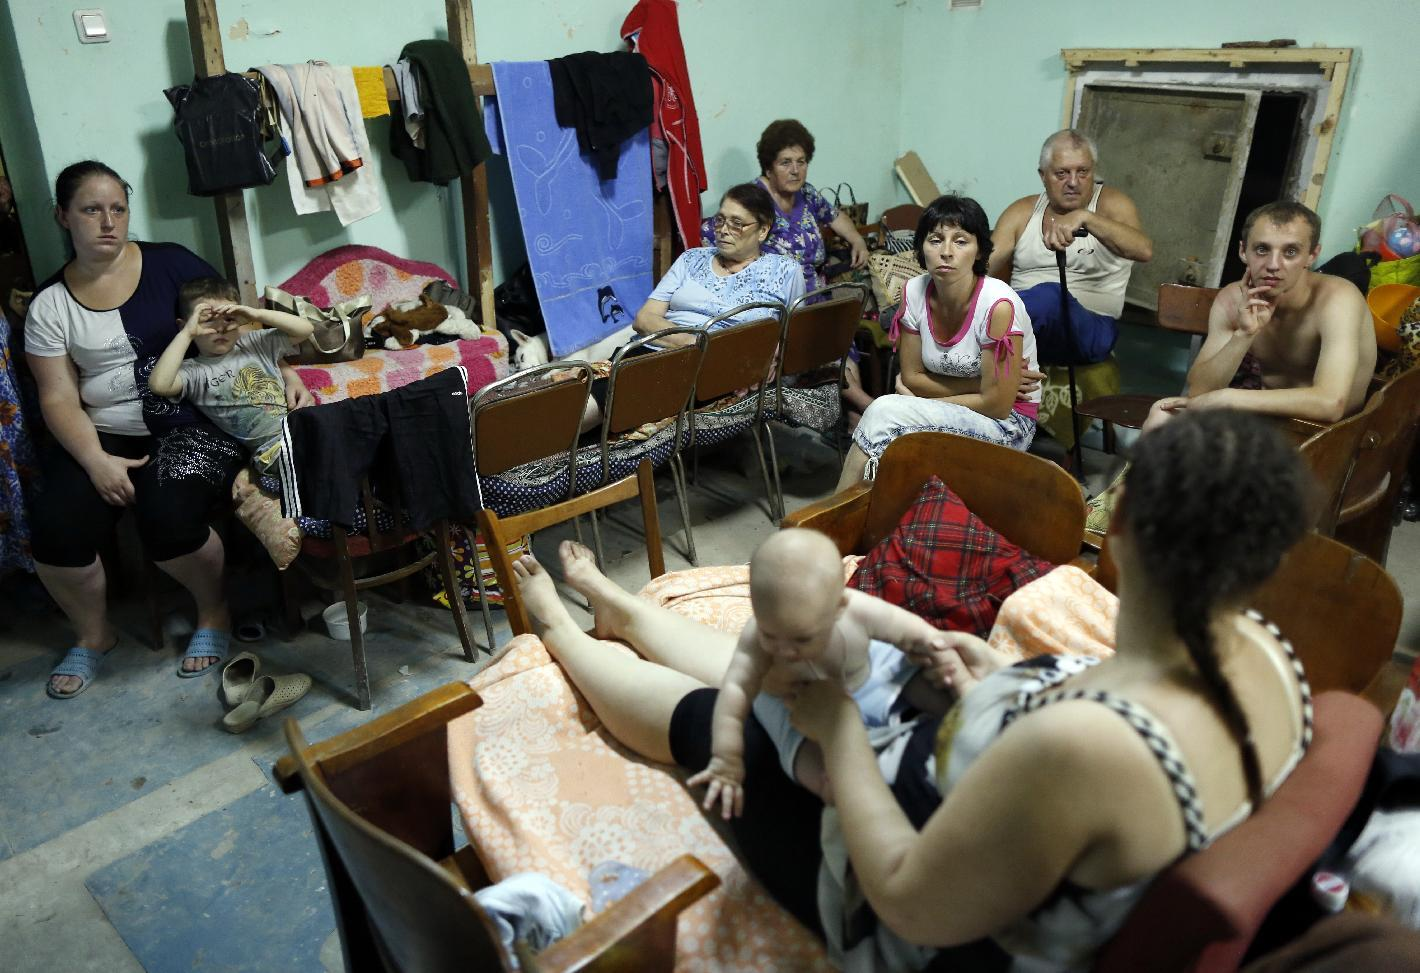 Photo taken on August 13, 2014 shows people inside a makeshift bomb shelter in the basement of their house in the town of Yasynuvata near Donetsk, eastern Ukraine (AFP Photo/Max Vetrov)